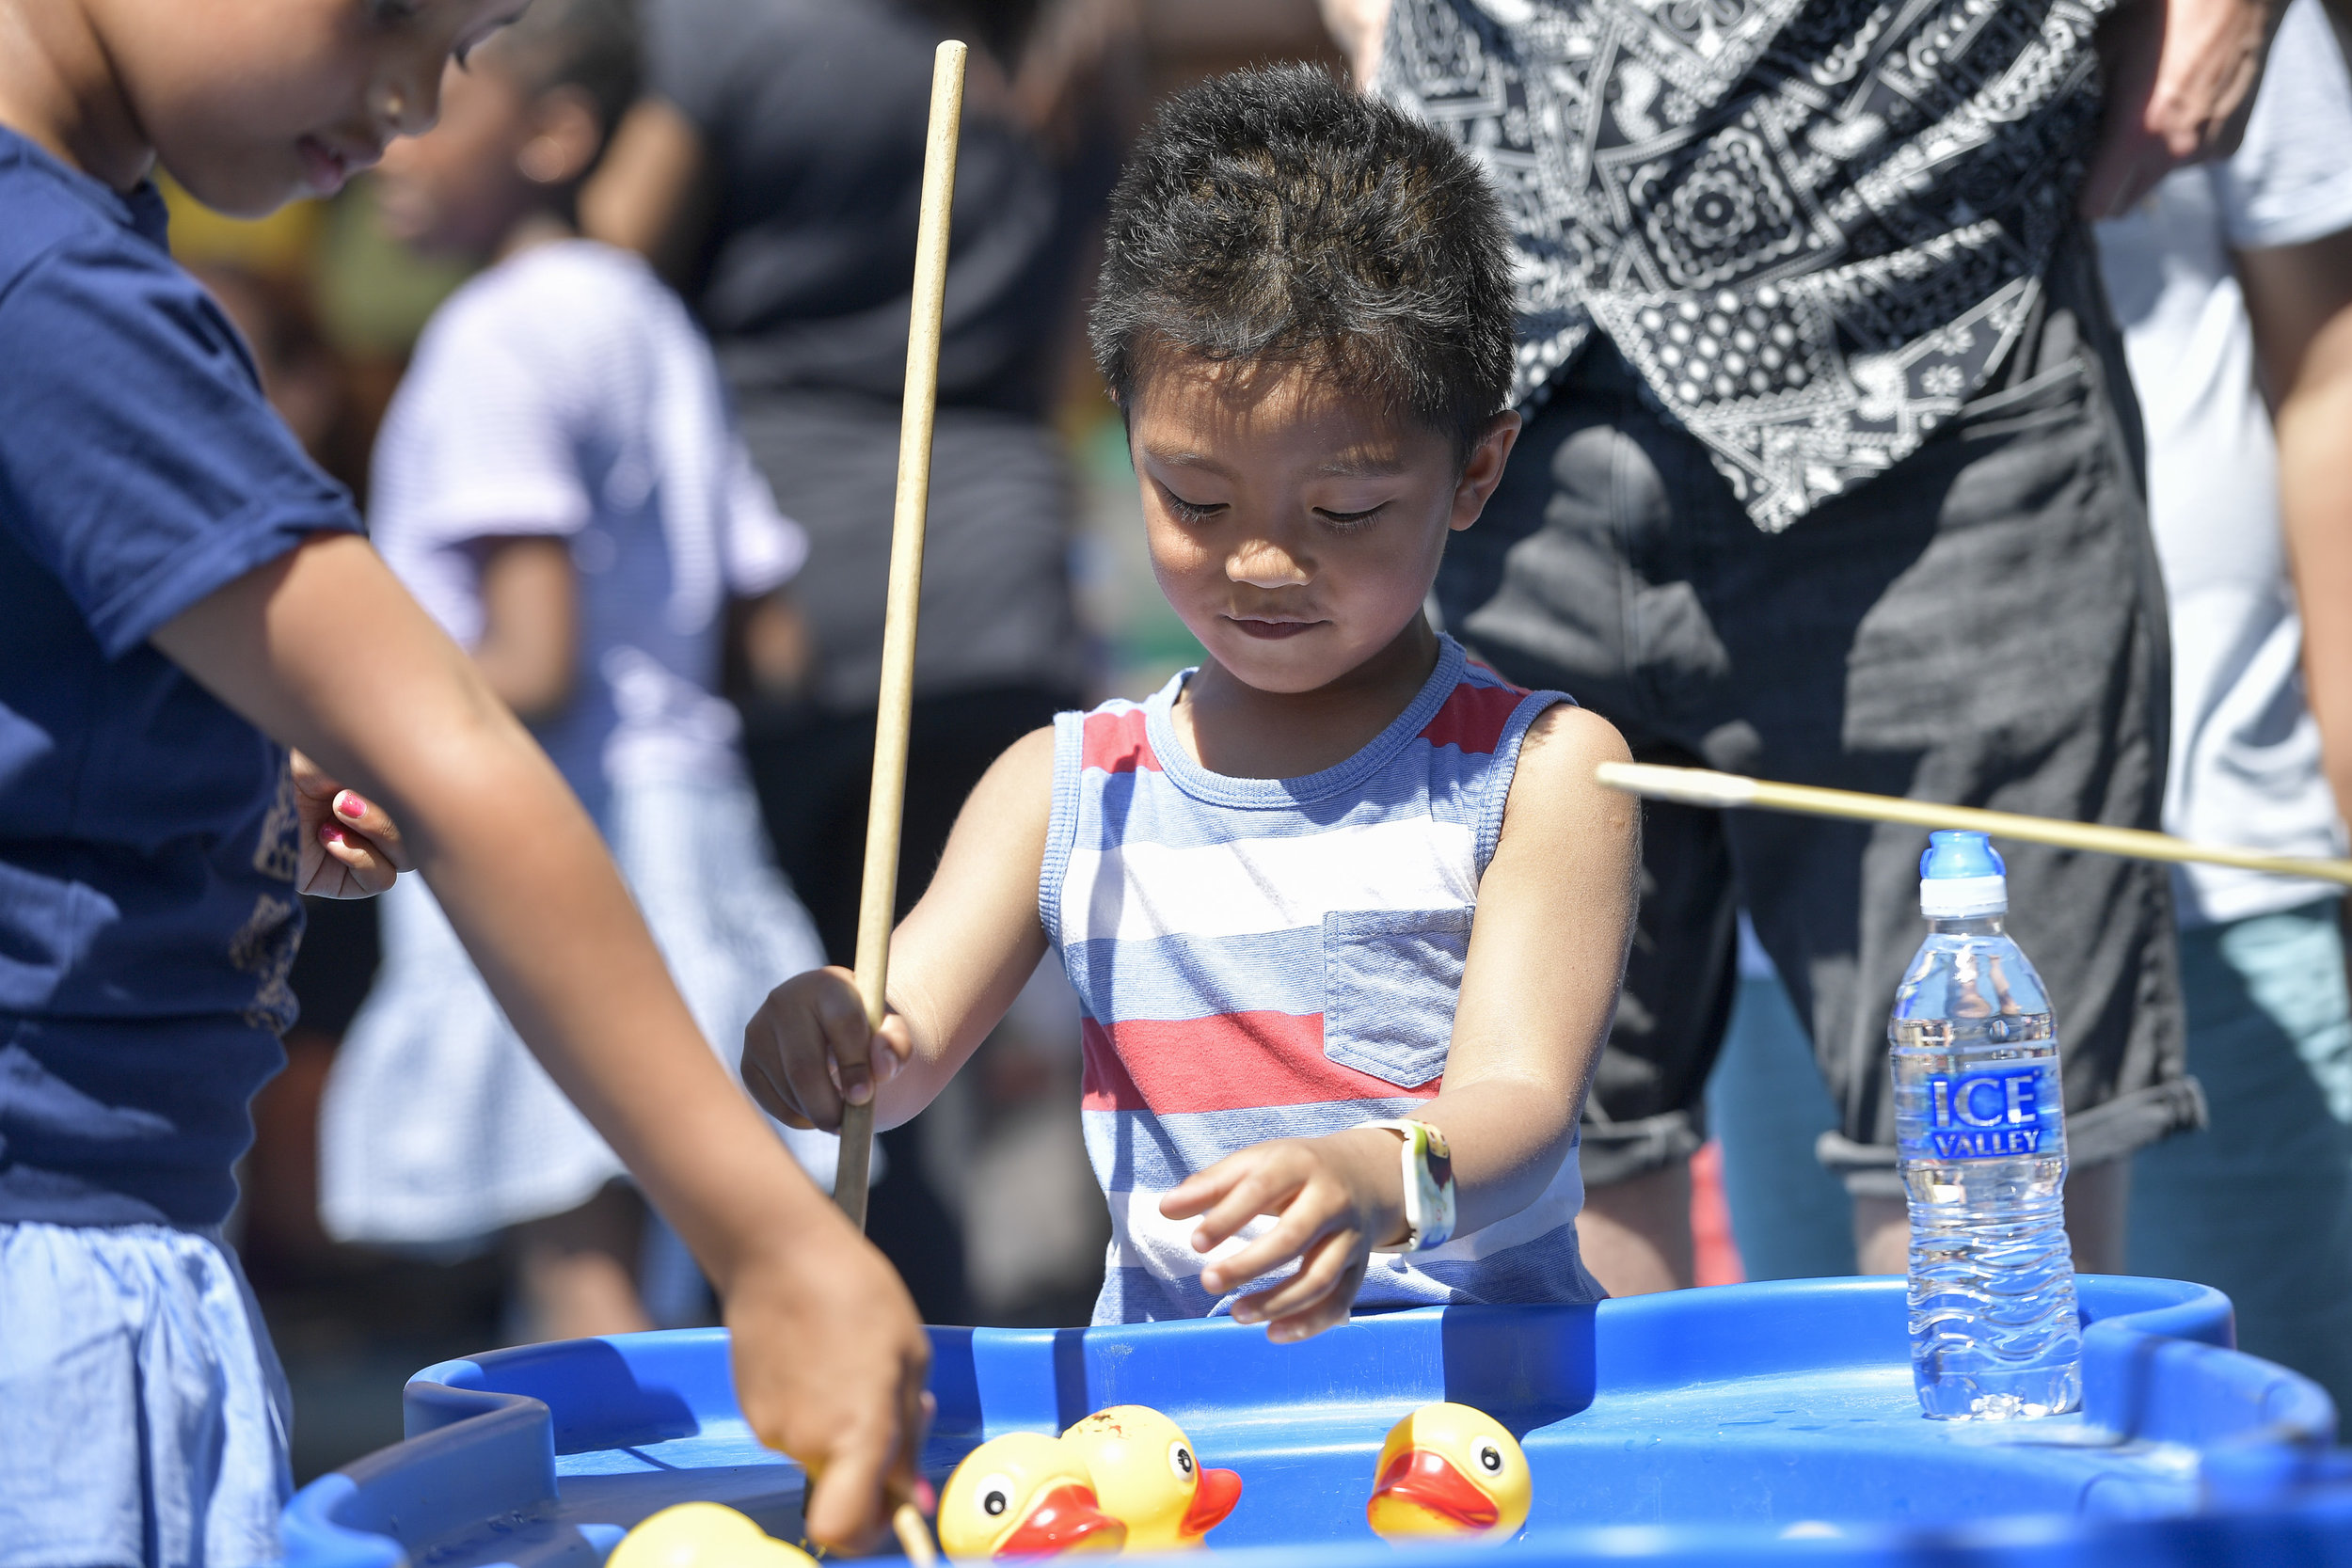 20180630-130137_School_Summer_Fair[1].jpg